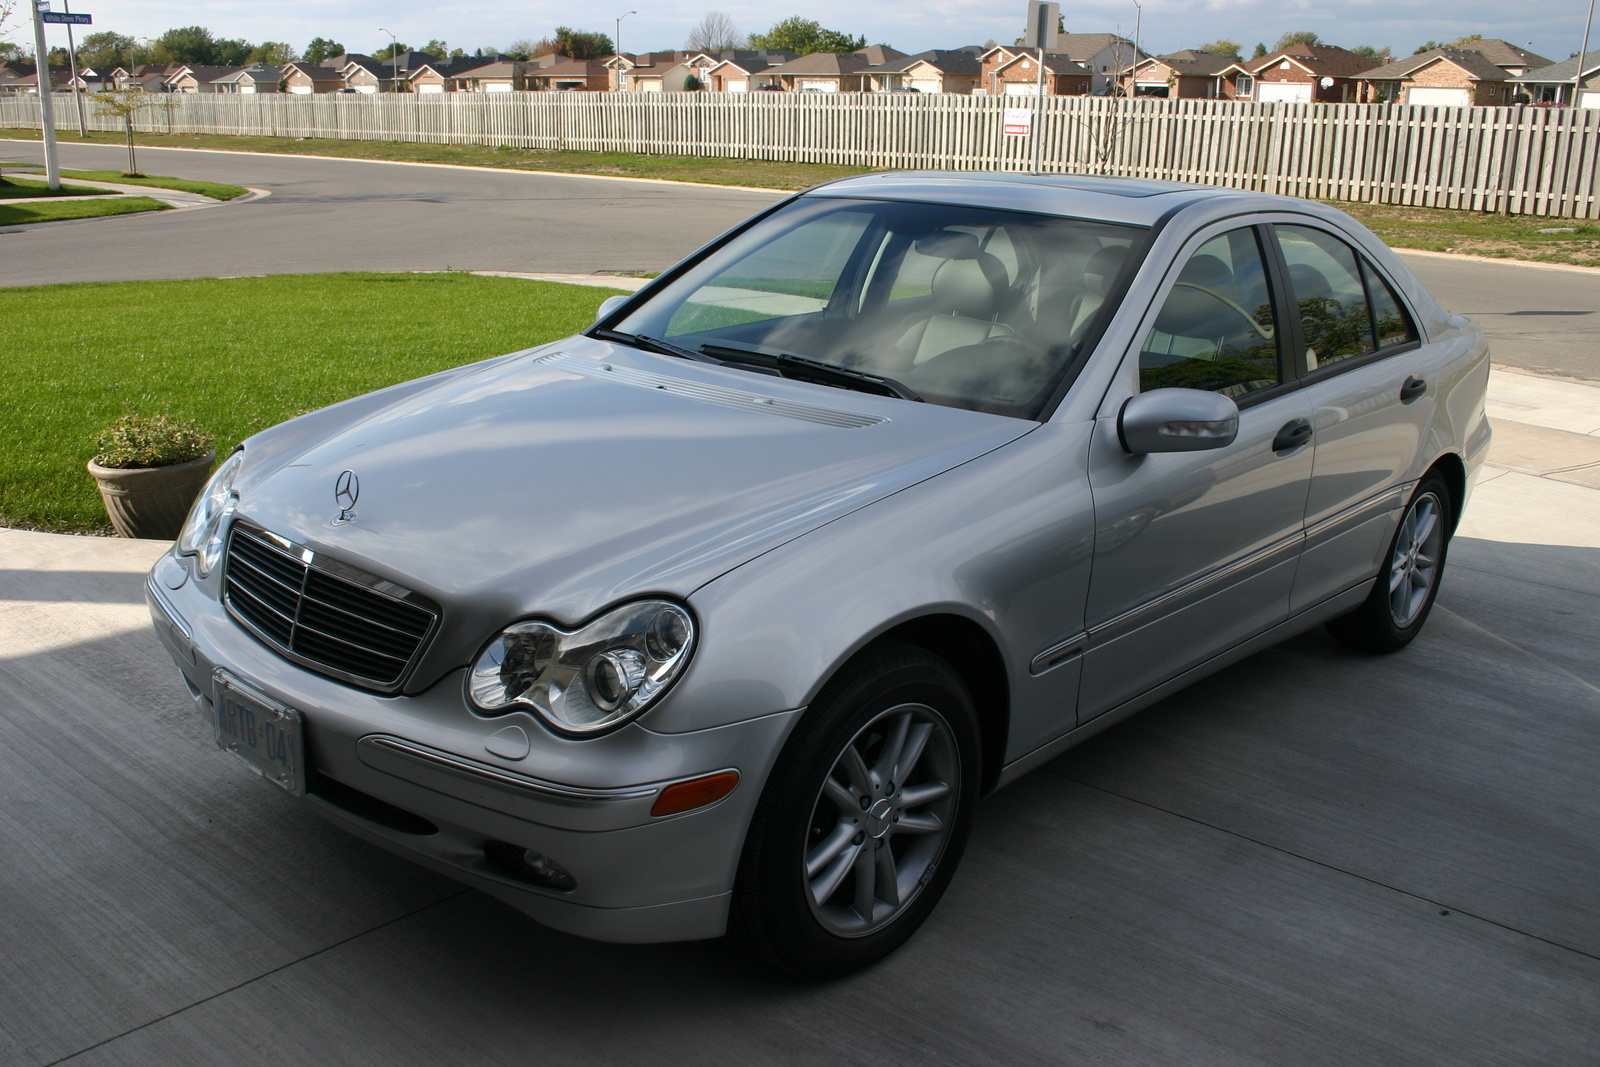 2004 mercedes benz c class other pictures cargurus. Black Bedroom Furniture Sets. Home Design Ideas